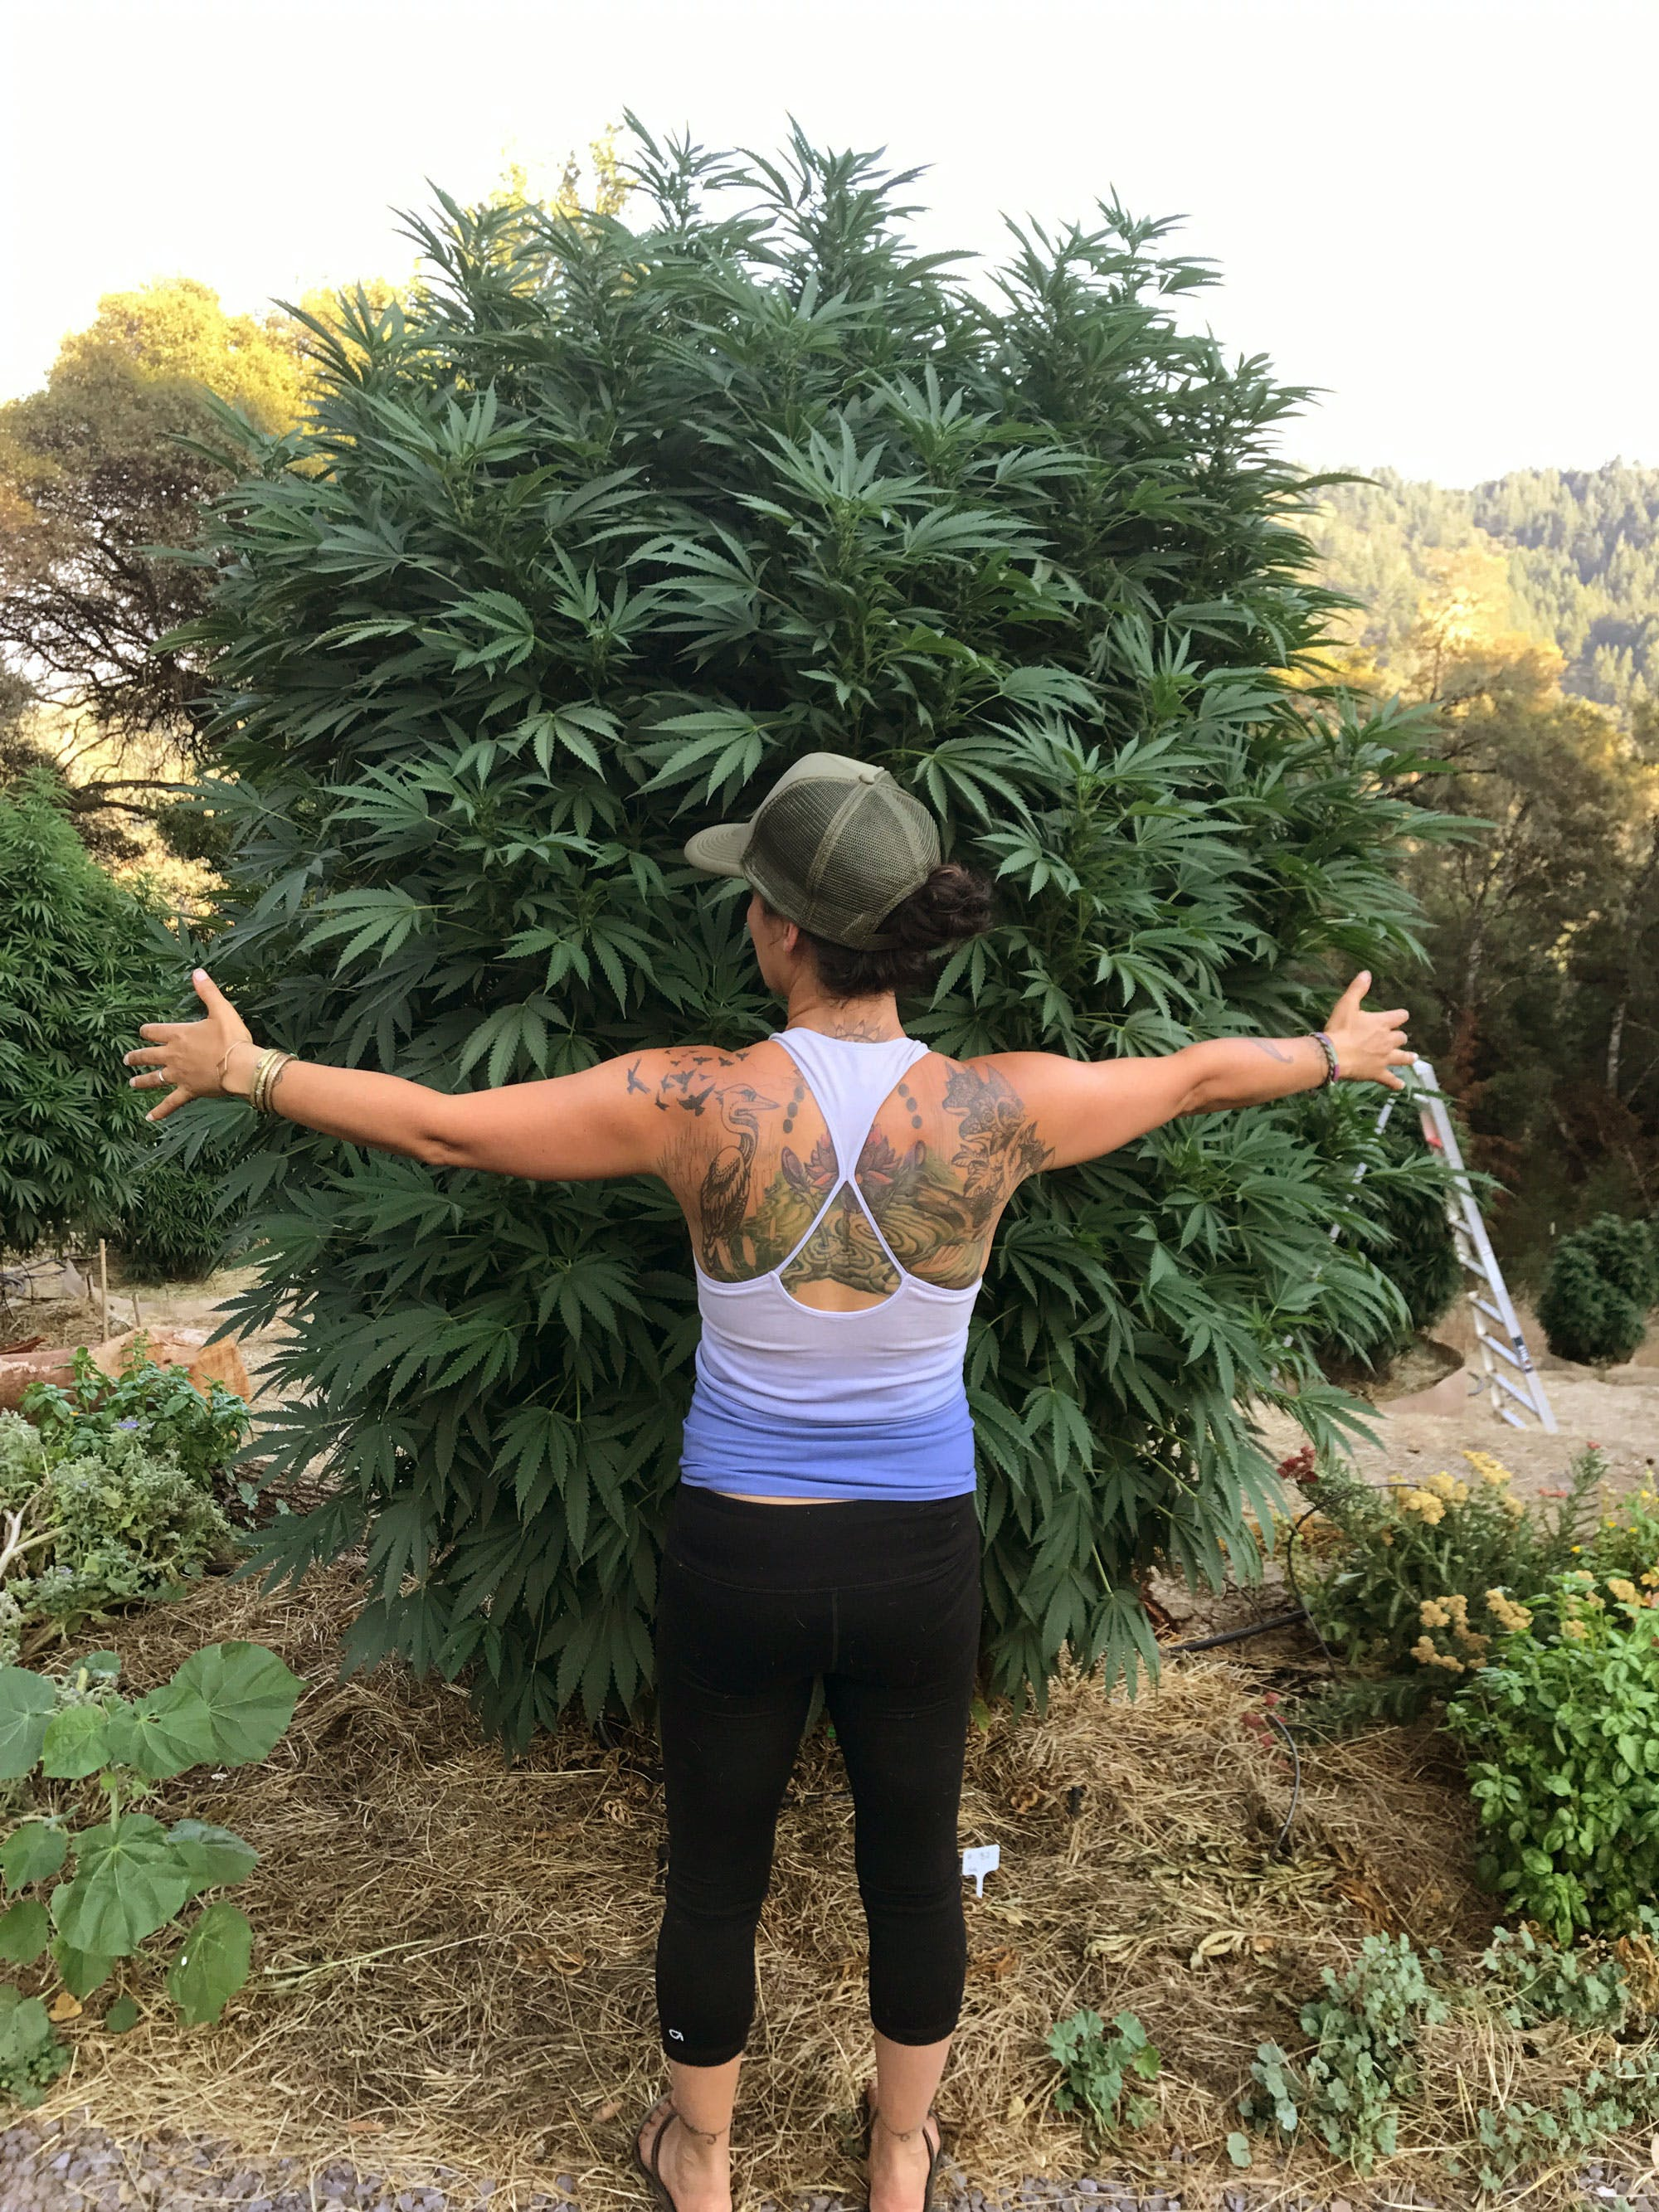 What Its Like To Be Married To A Cannabis Farmer In Humboldt 2 Cannabis Cafes In Paris Are Trying To Claim The Bud They Sell Isnt For Smoking